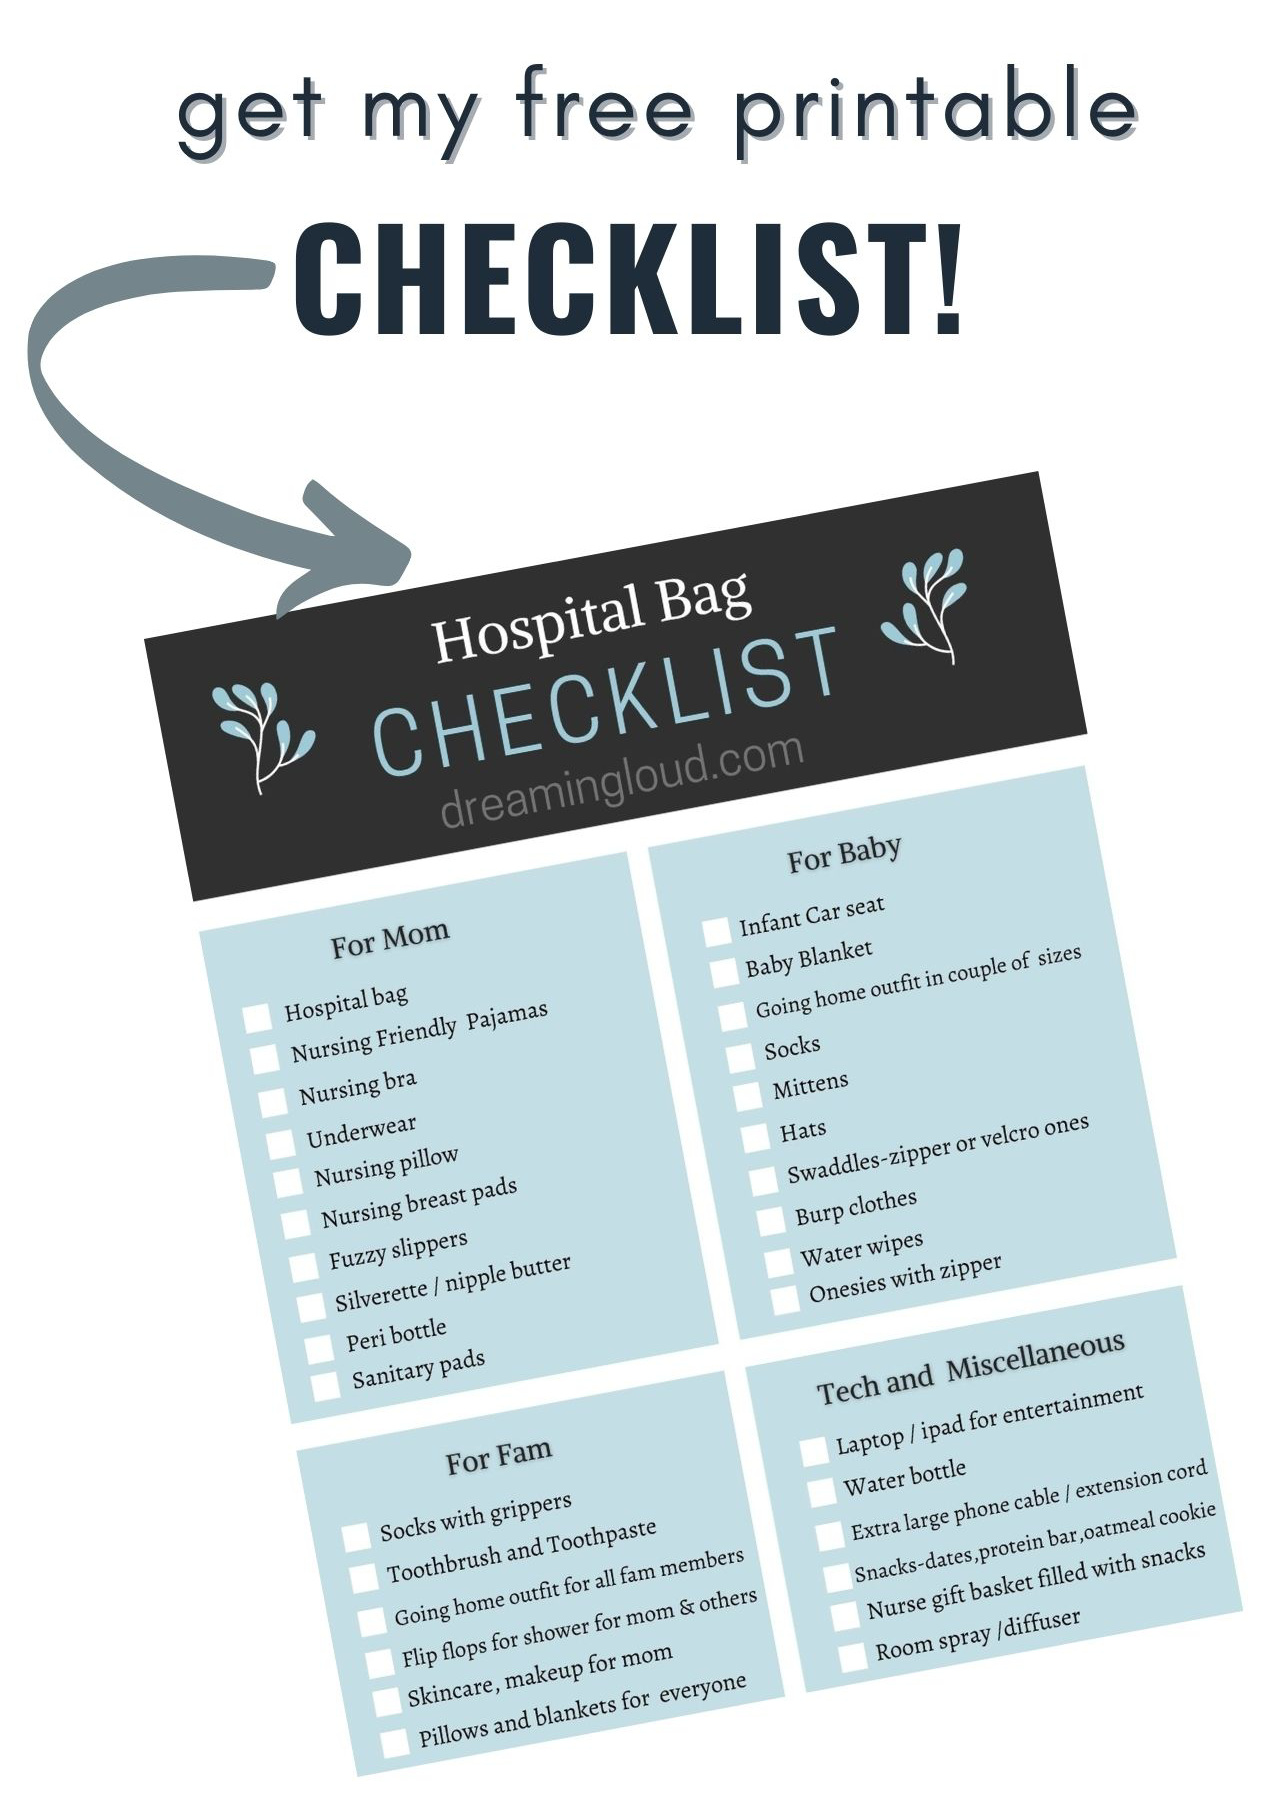 Free Printable Hospital bag Checklist |Hospital Bag by popular Maryland motherhood blog, Dreaming Loud: image of a printable hospital bag checklist.